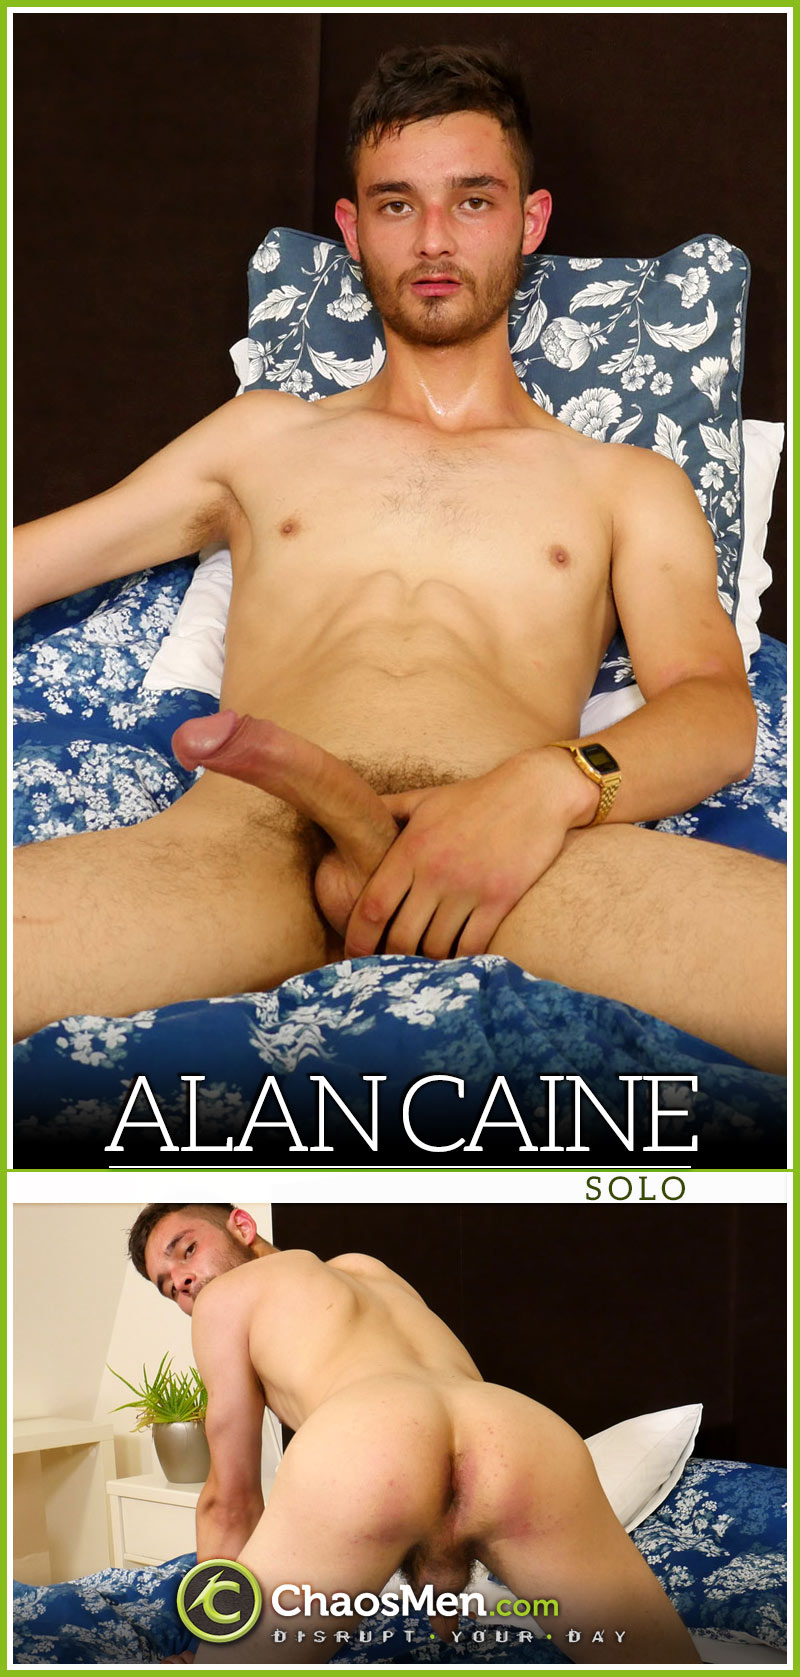 Alan Caine Solo at ChaosMen